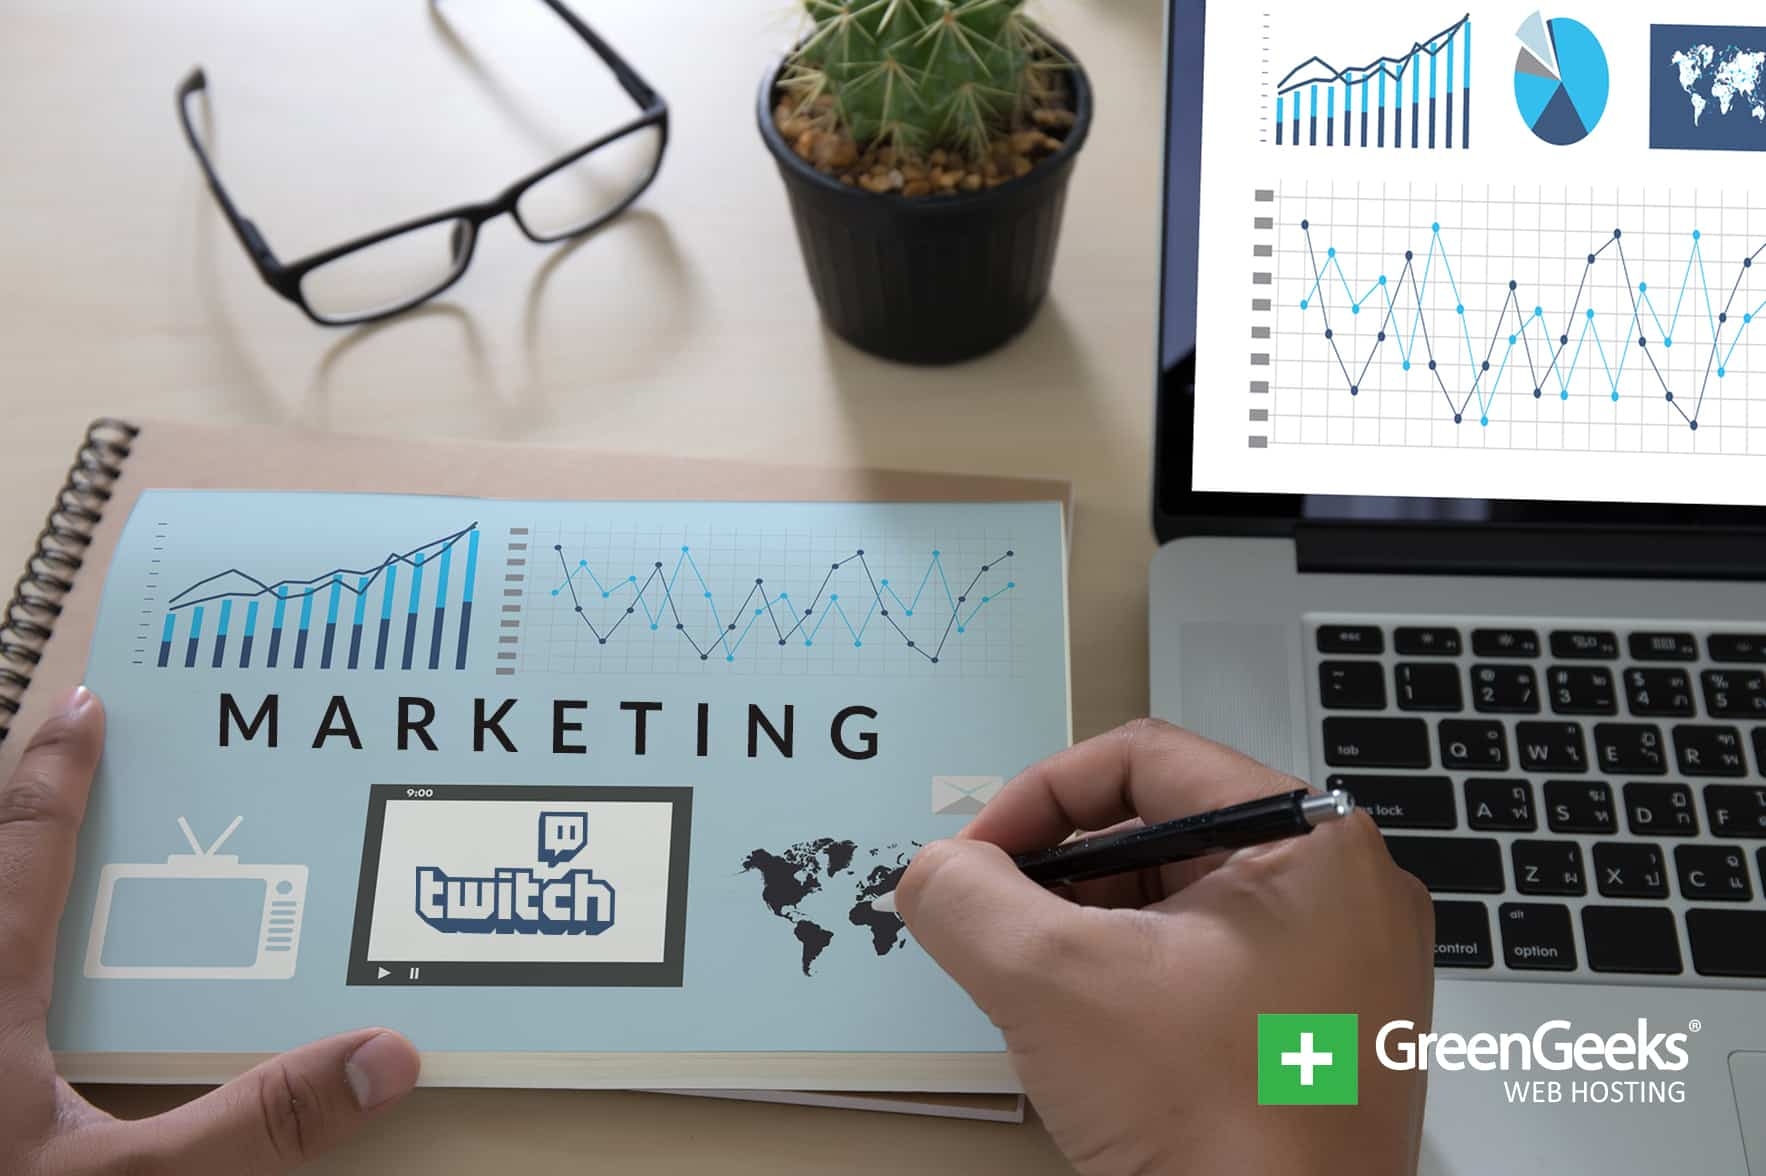 10 Reasons Why You Should Not Ignore Marketing on Twitch